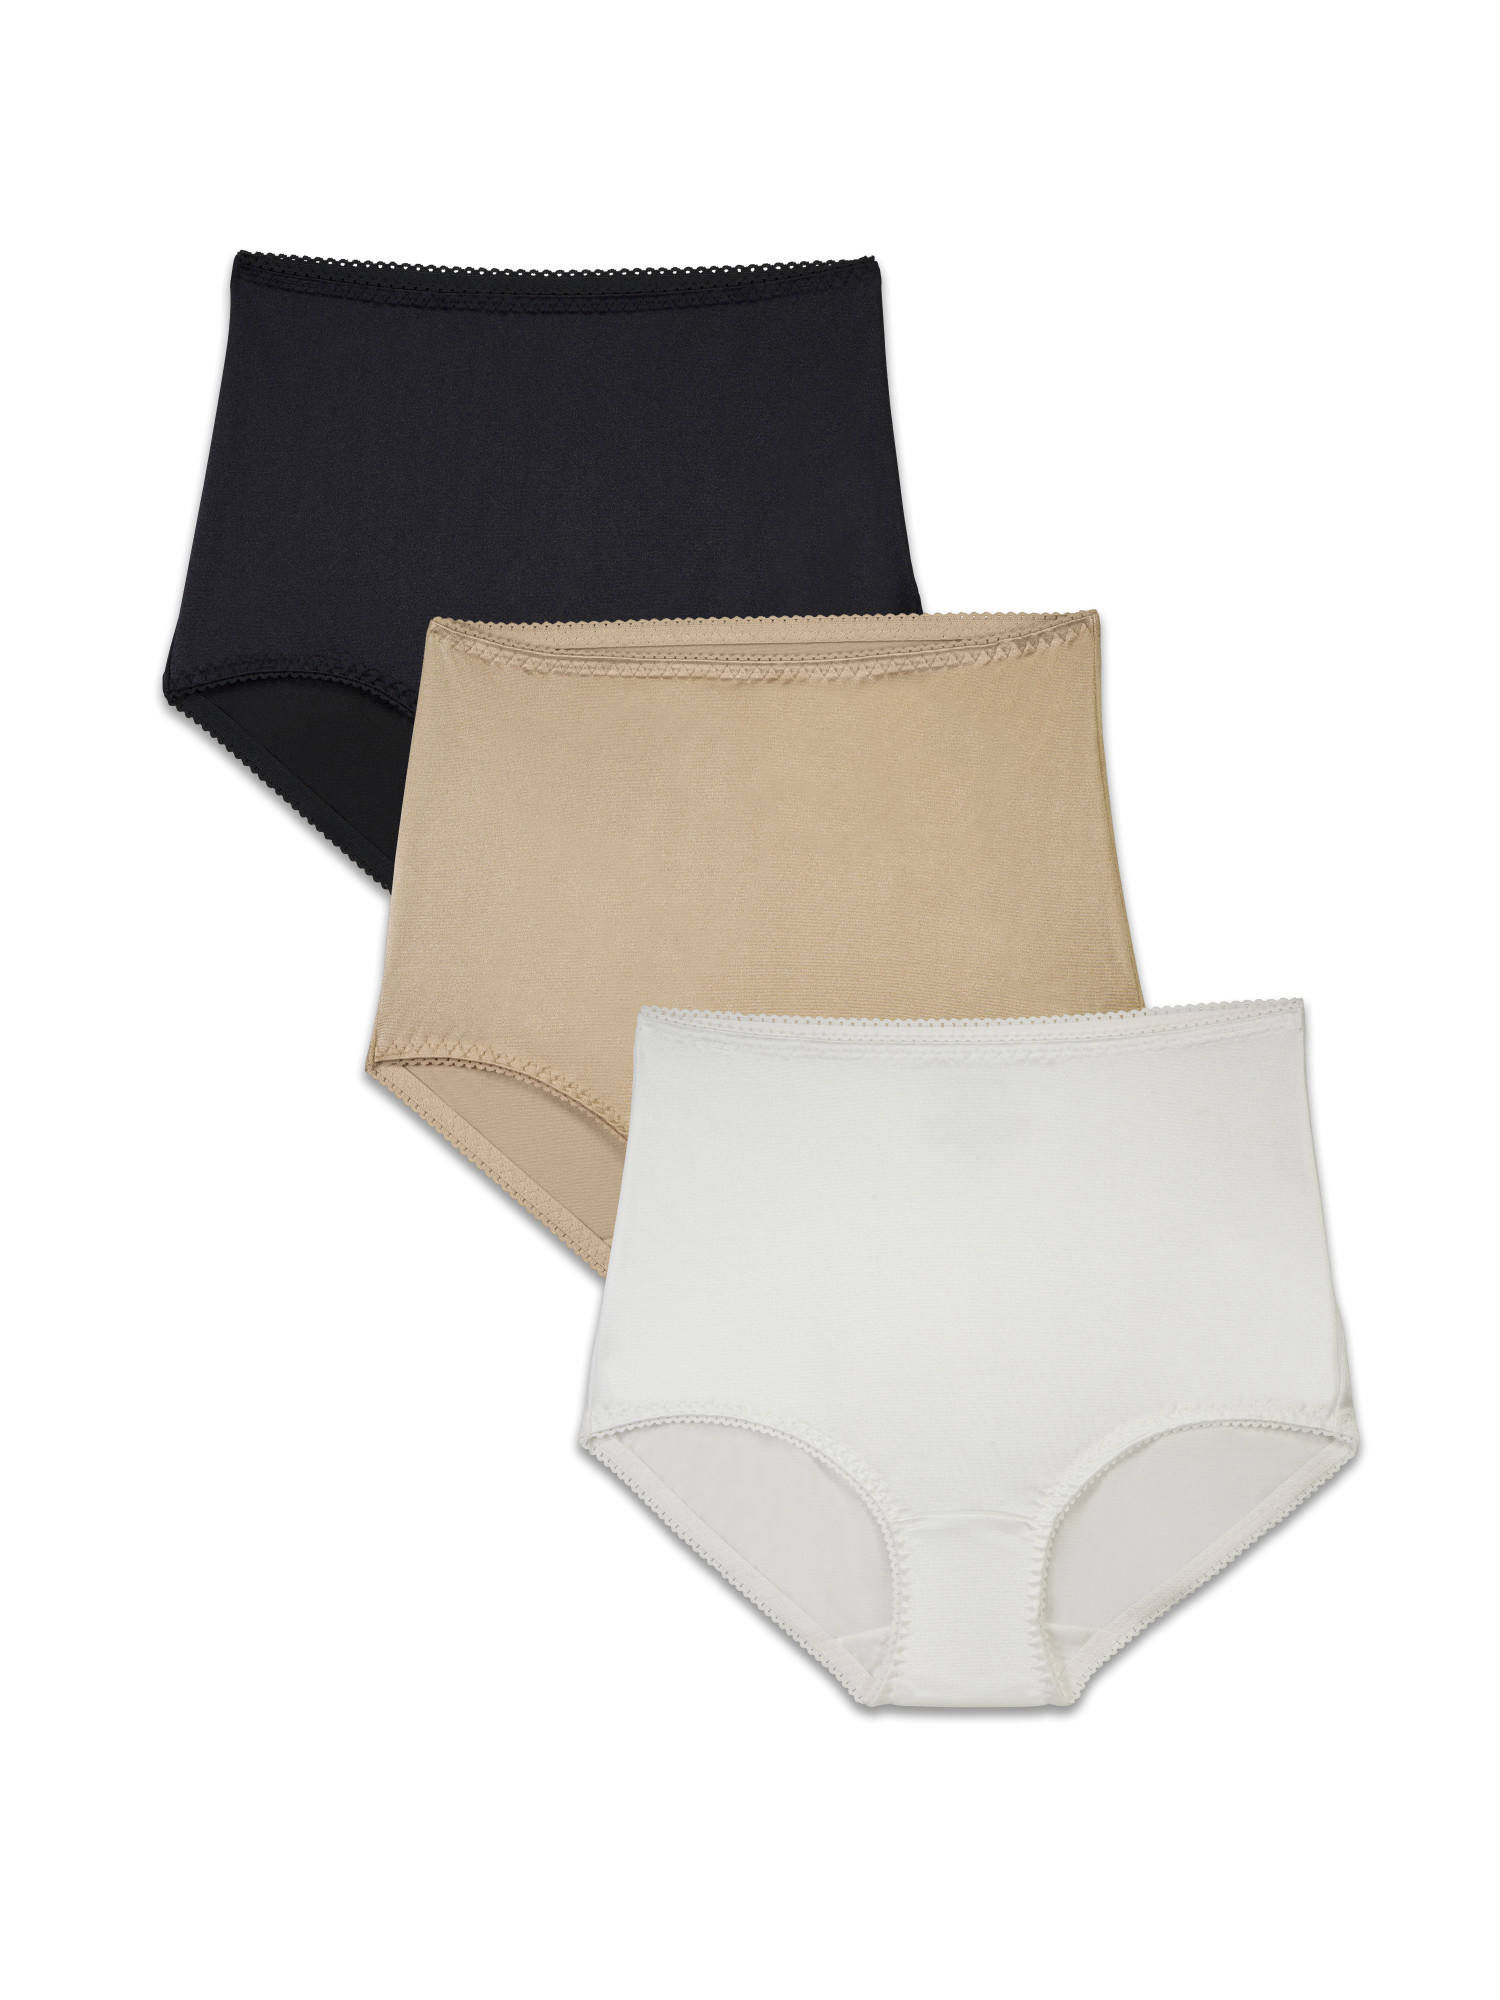 767a3d280af Radiant by Vanity Fair - Women's Undershapers Light Control Brief Panty, 3  Pack, Style 3440301 - Walmart.com